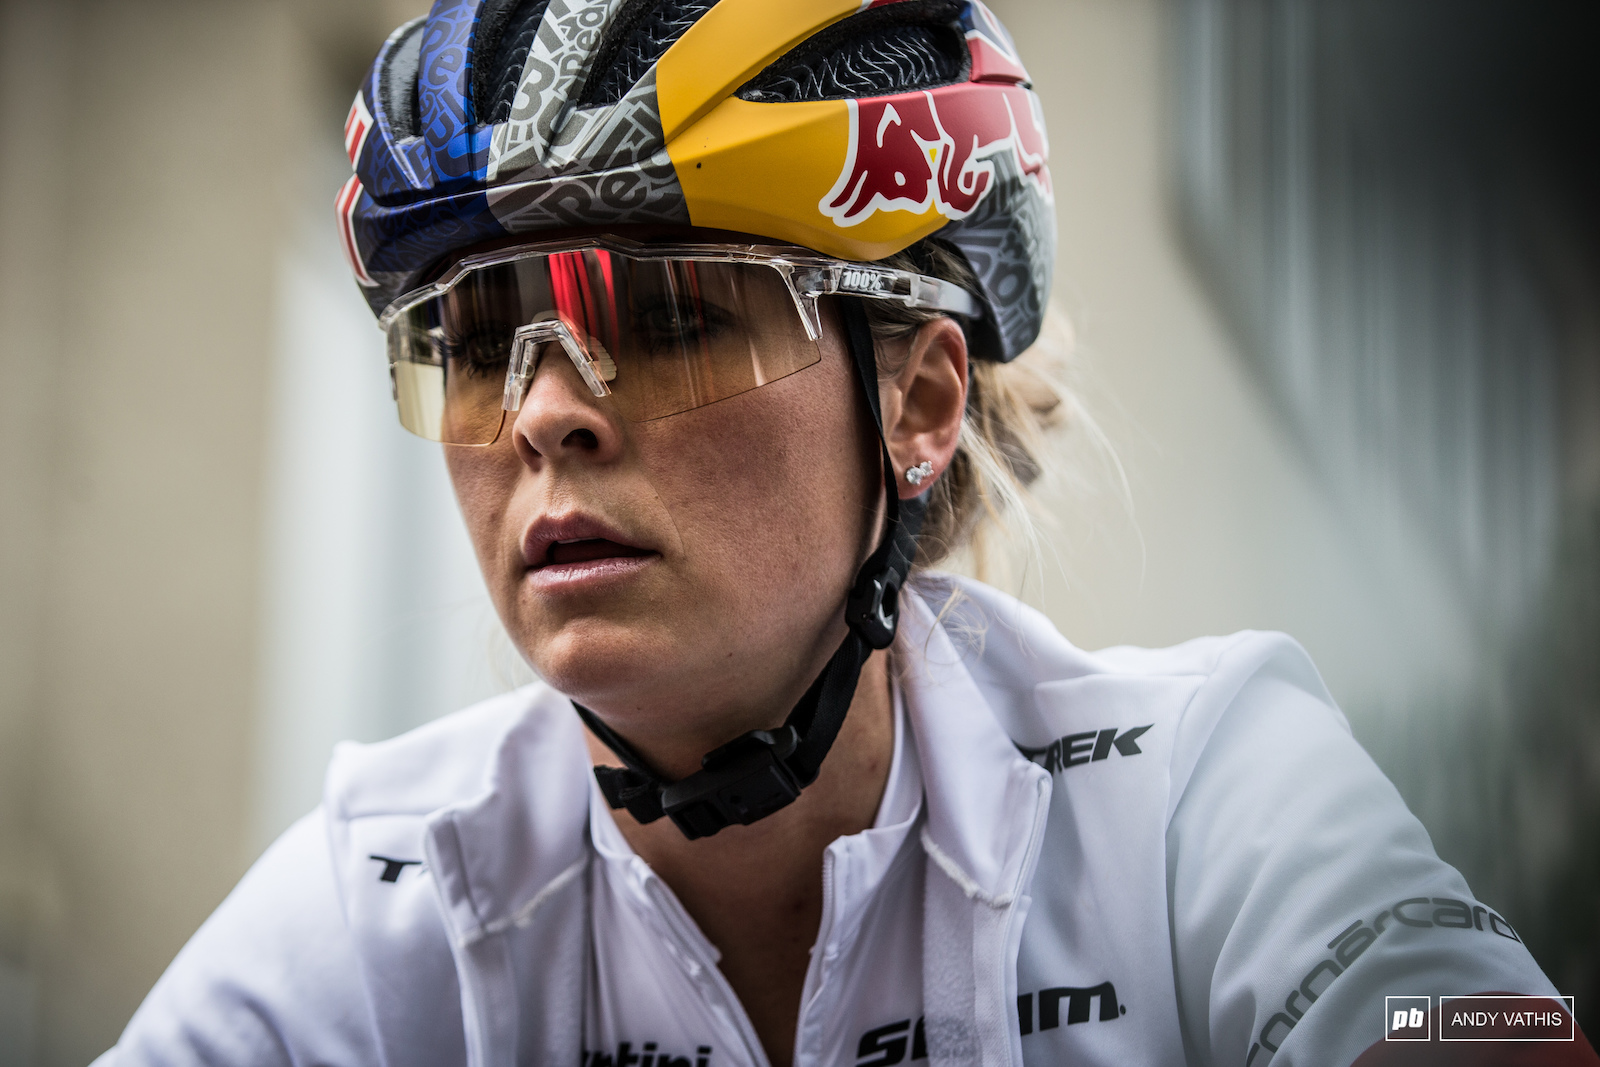 Emily Batty couldn t find the pace today. She left last season hungry and will look to bounce back in Nove Mesto.